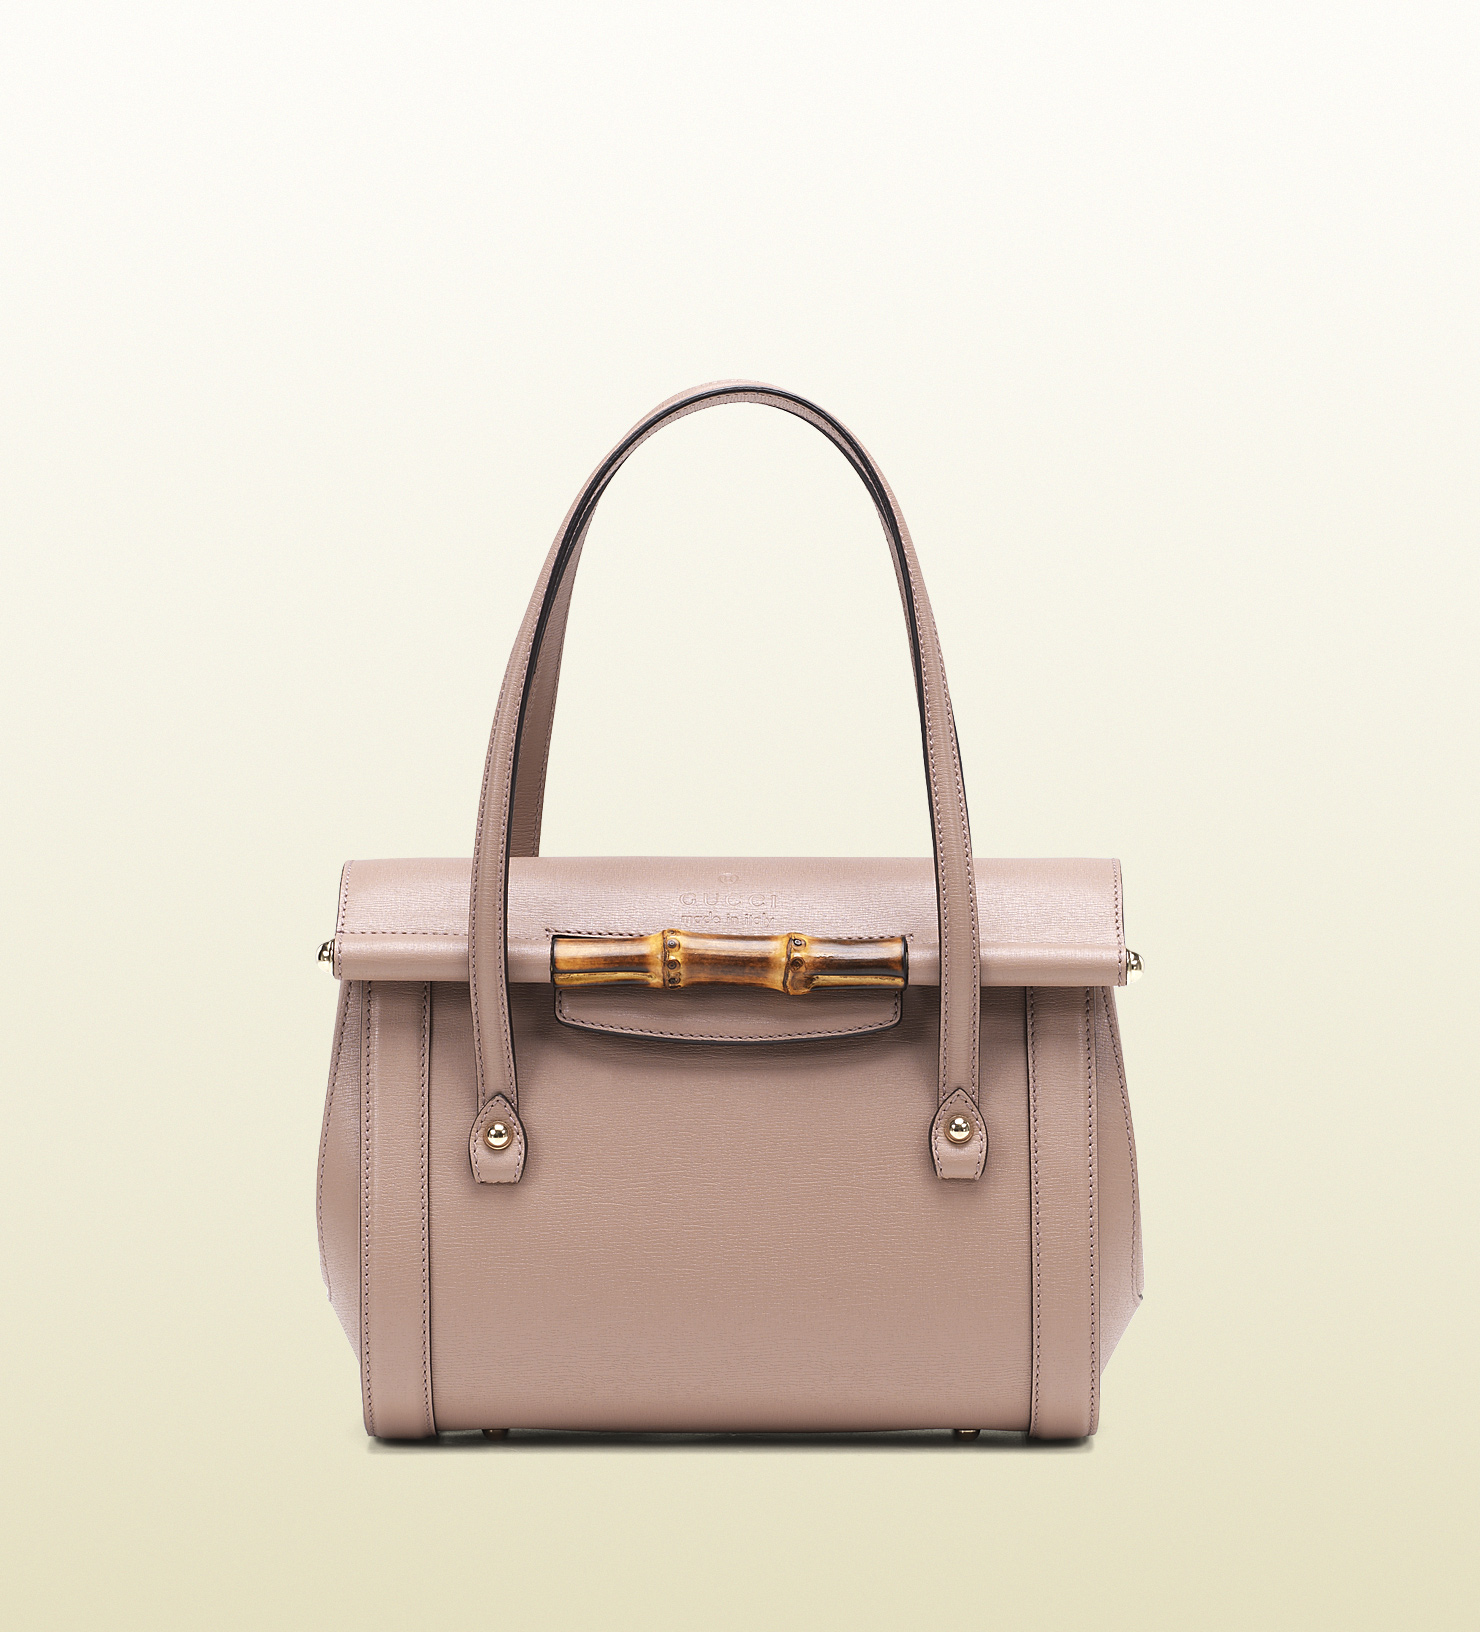 96378d68aec Lyst gucci bamboo leather top handle bag in pink jpg 1480x1632 Bamboo pink gucci  bag